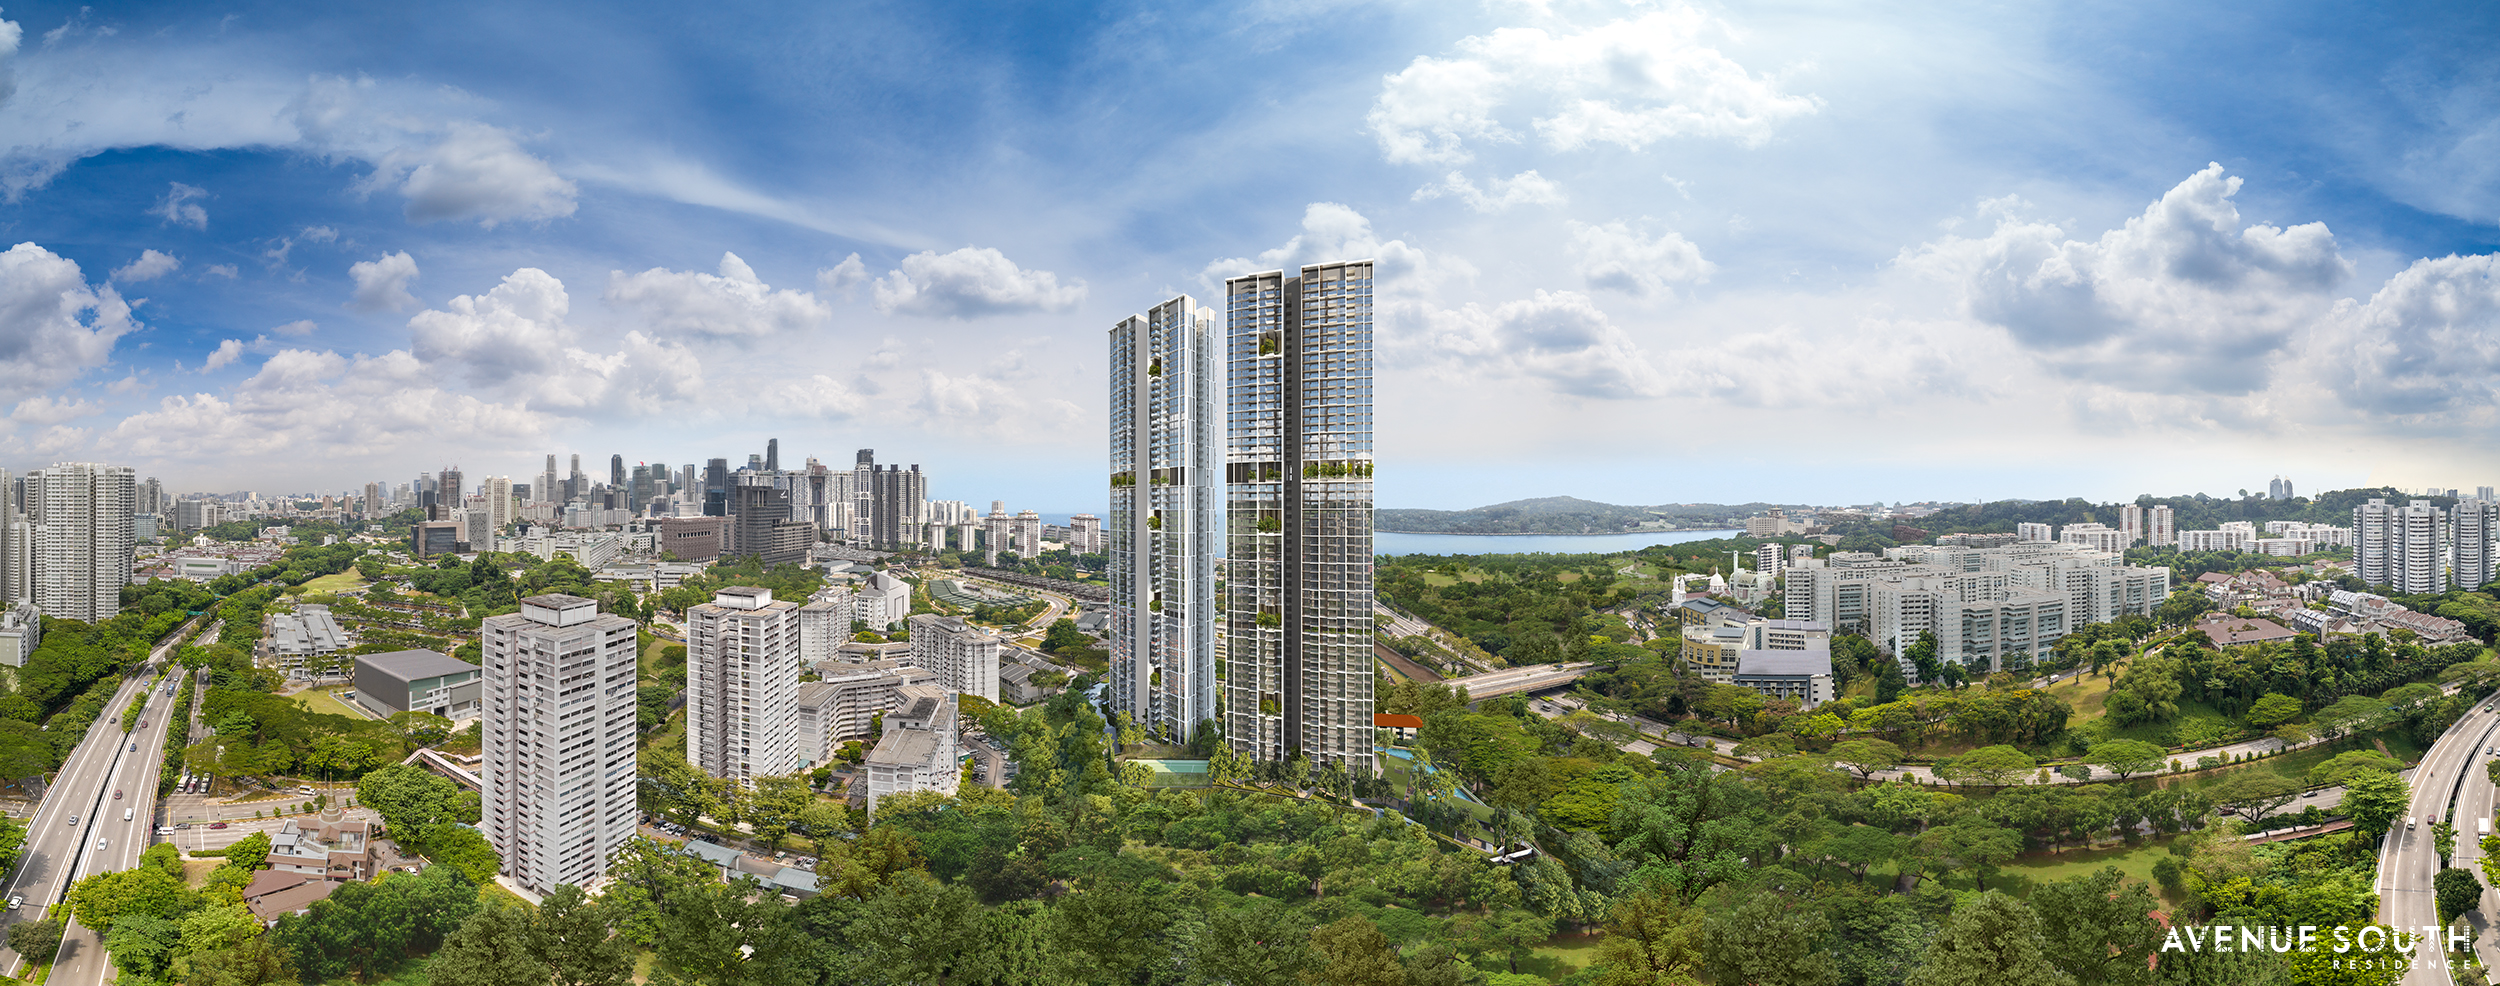 avenue south residence is best selling condo in singapore sep 2019